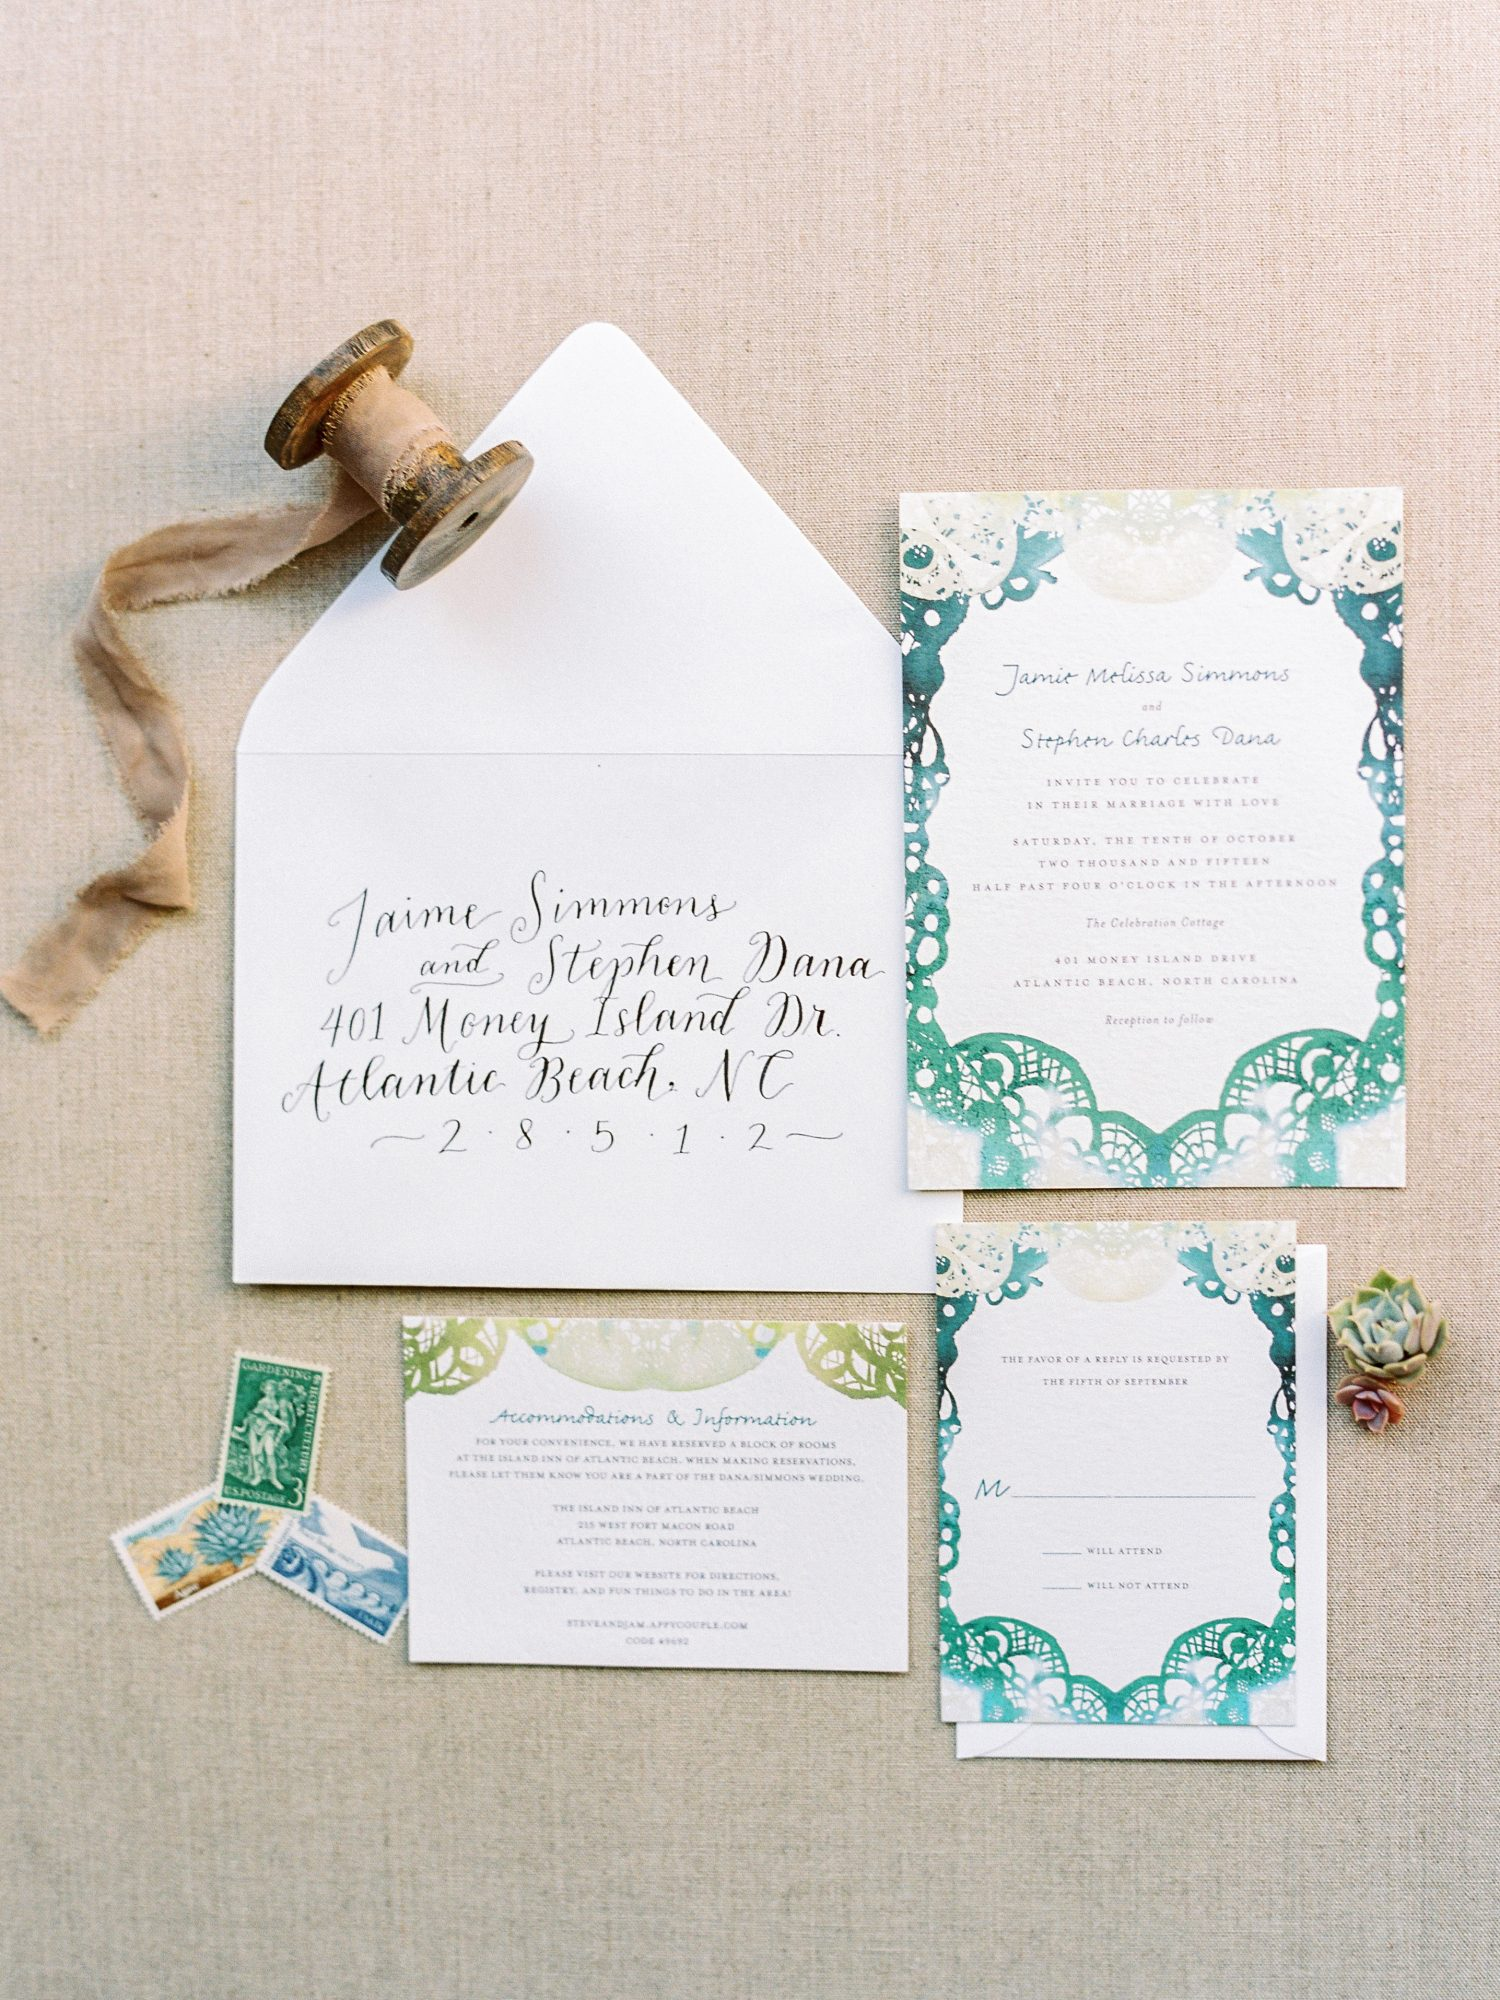 These blue-green invites for a North Carolina wedding mixed beachy and boho vibes. The watercolor pattern was bright and welcoming and great for an oceanside escape.